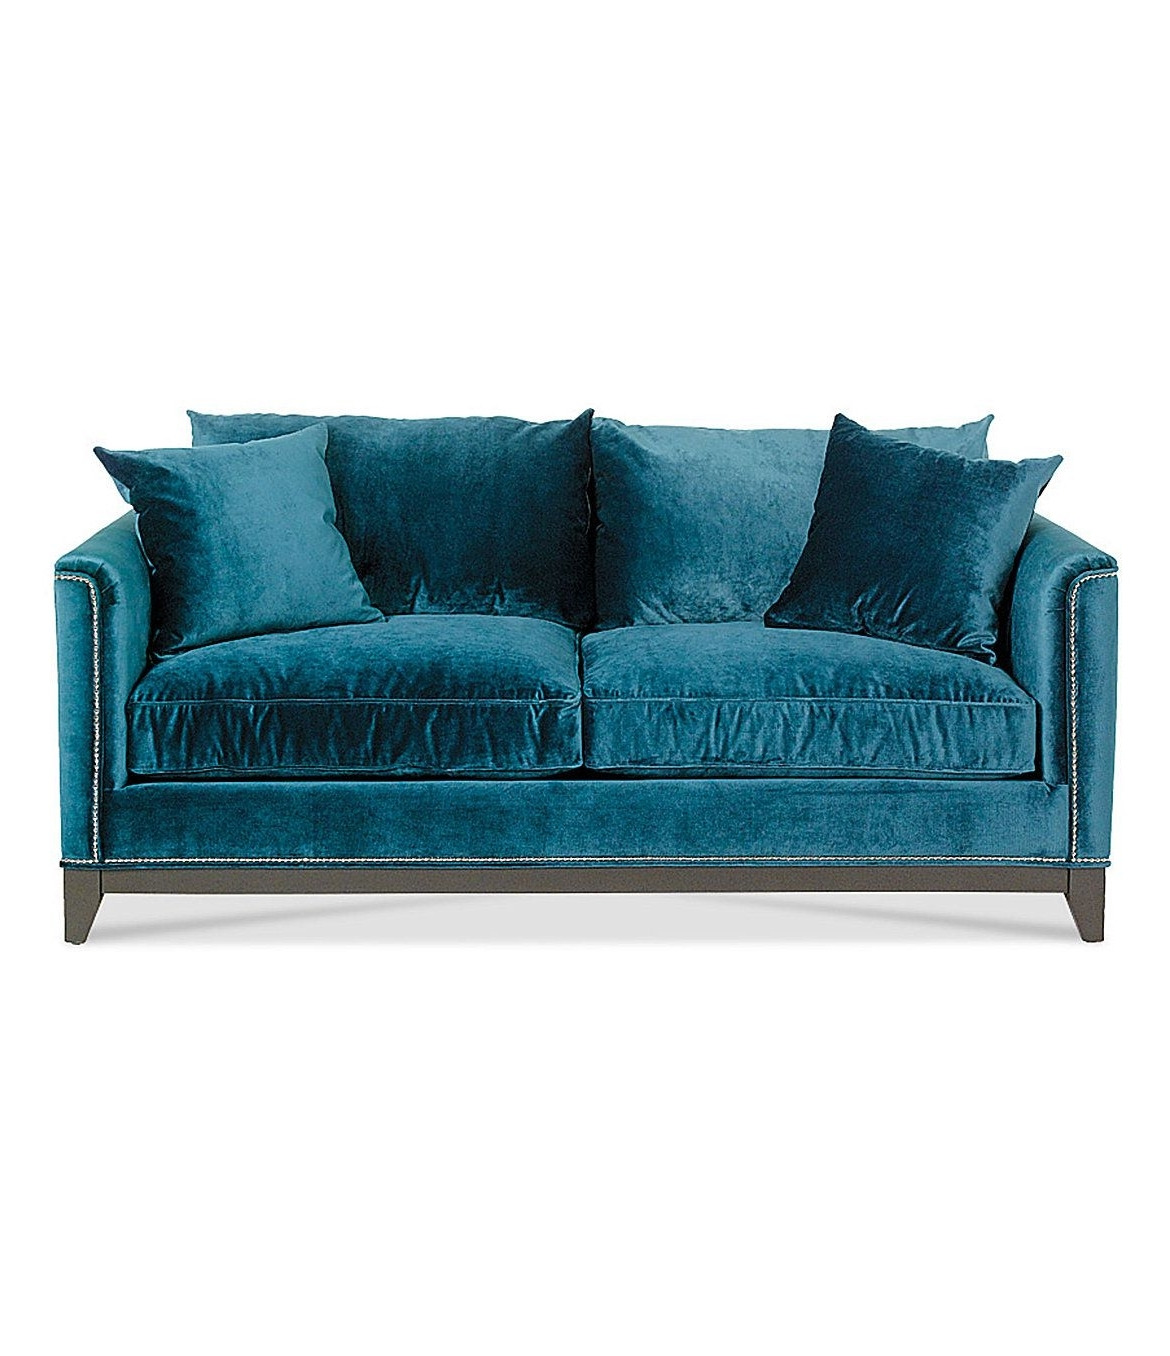 """Jonathan Louis """"mystere"""" Sofa From Dillard's $699! This Just Could Regarding Most Popular Dillards Sectional Sofas (View 15 of 15)"""